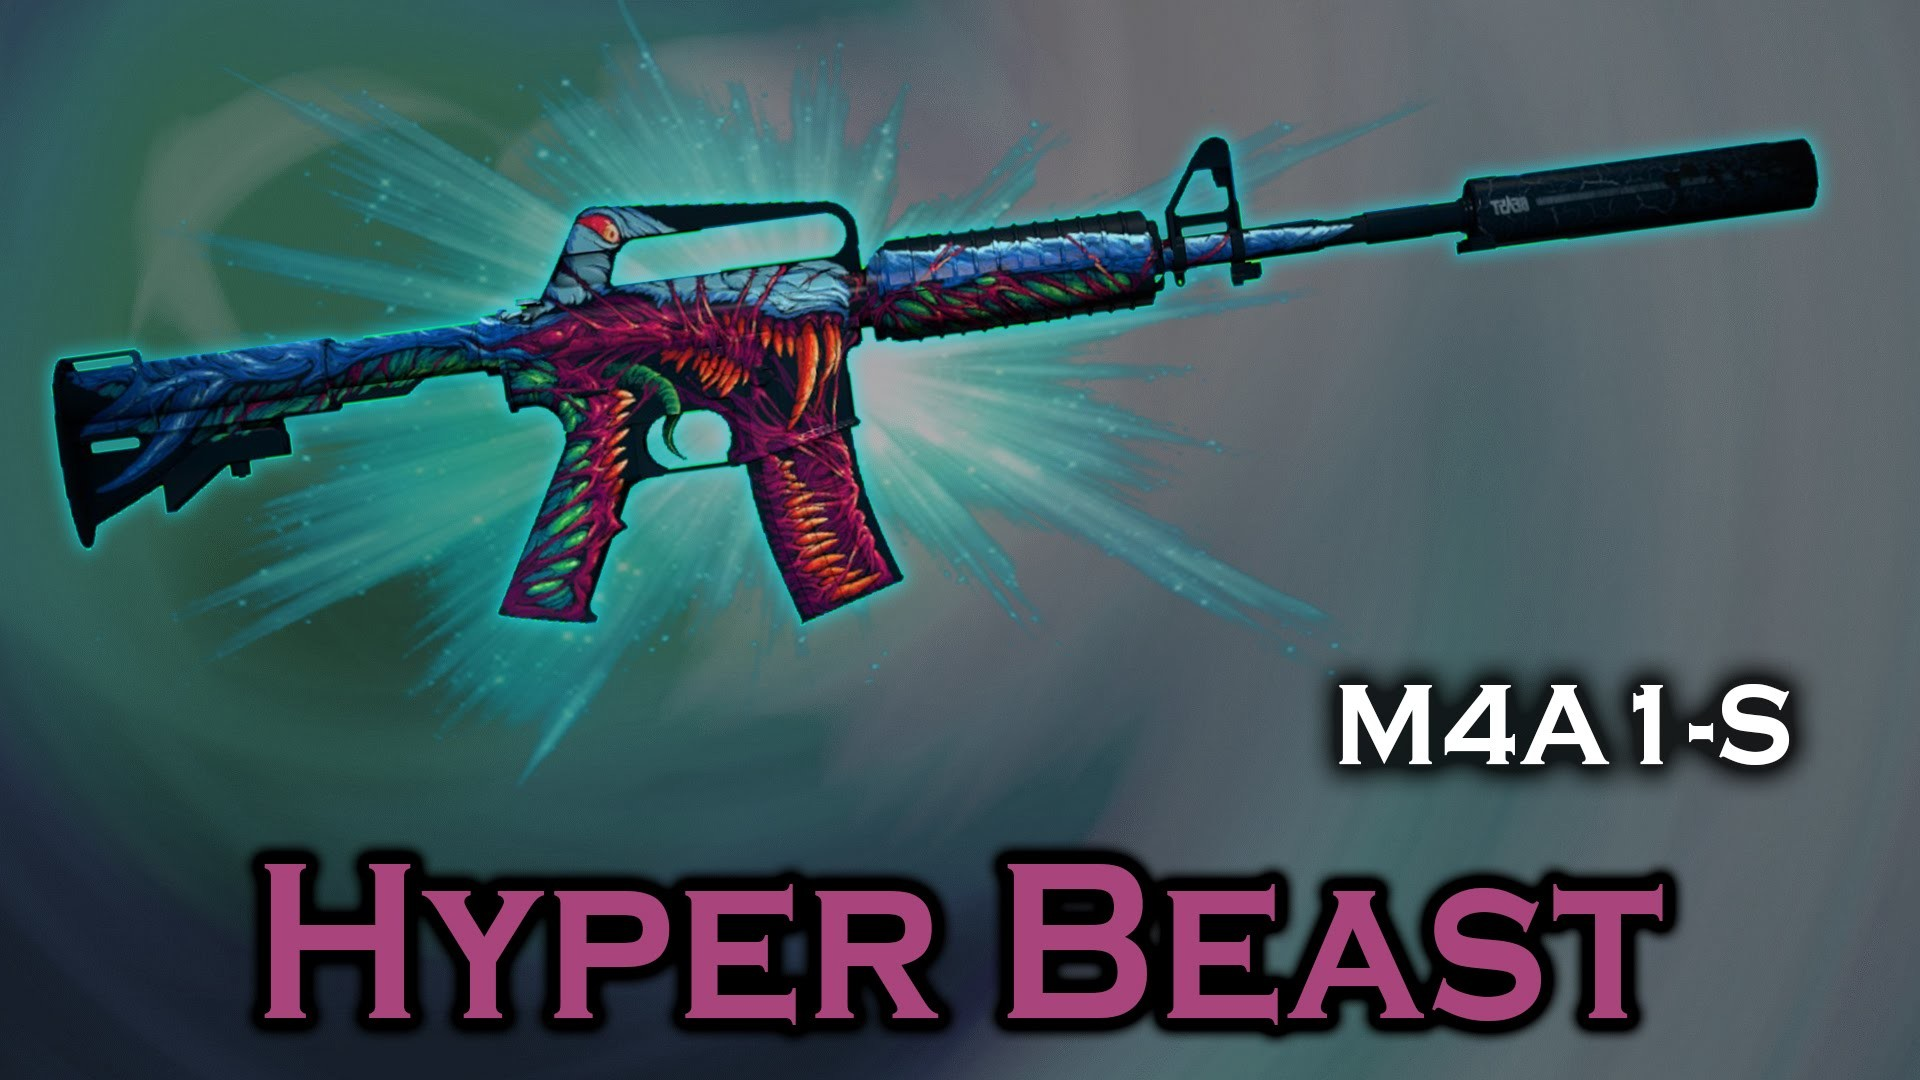 1920x1080 Is there a 1080p Hyper Beast wallpaper anywhere GlobalOffensive